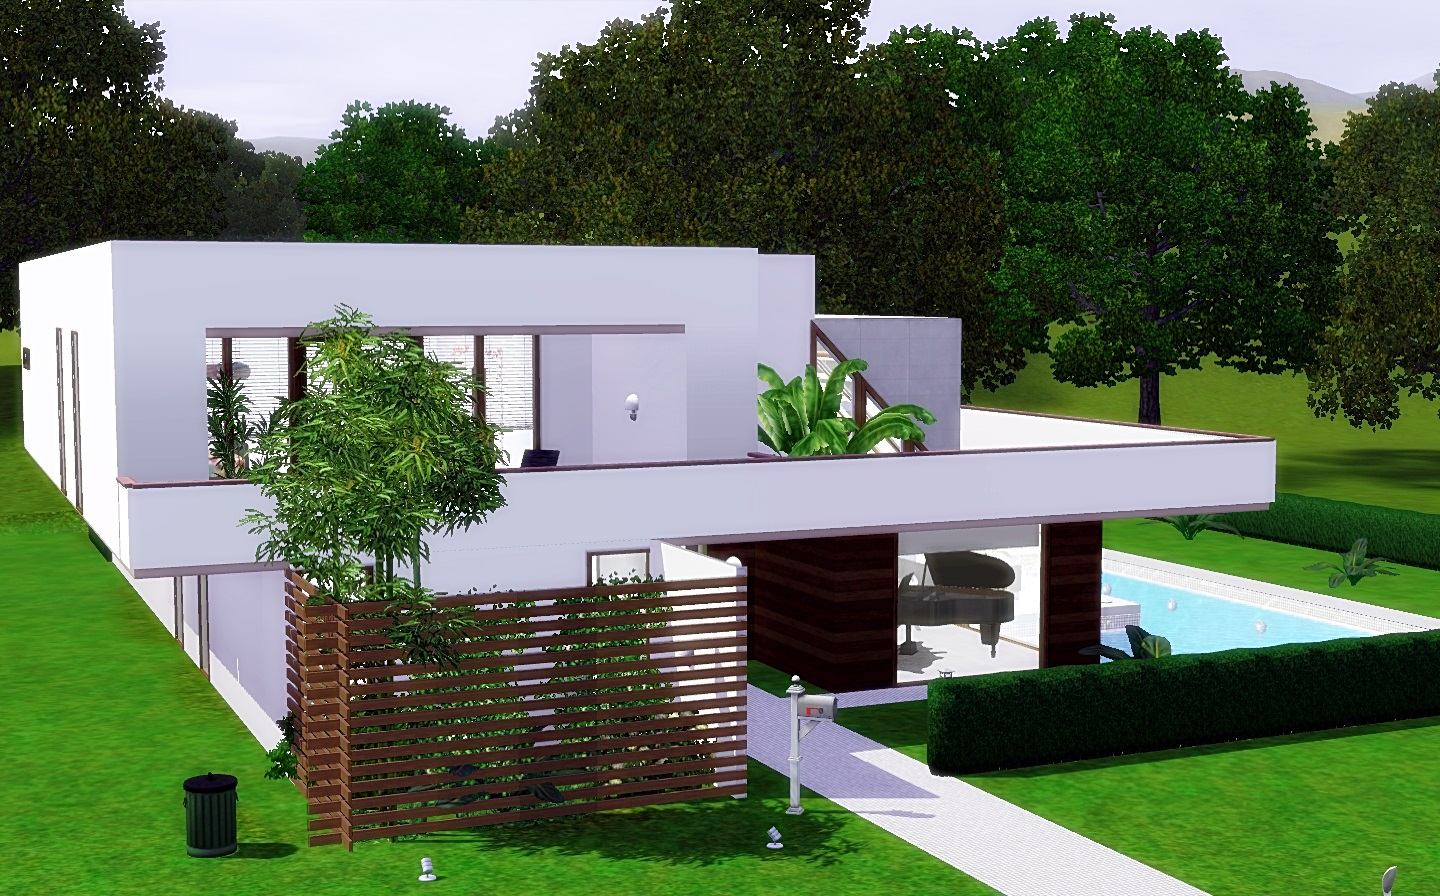 Sims 3 updates via sims modern cozy house by via sims